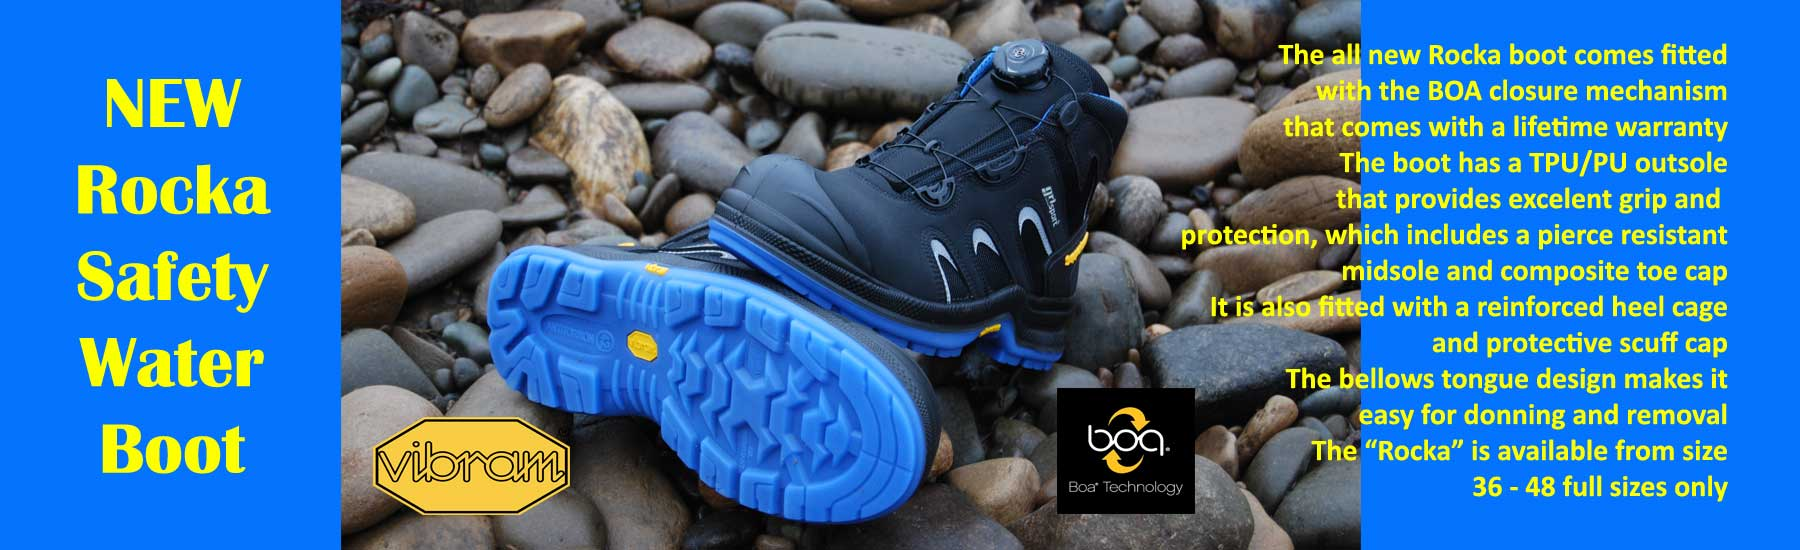 Rocka Safety Water Boot